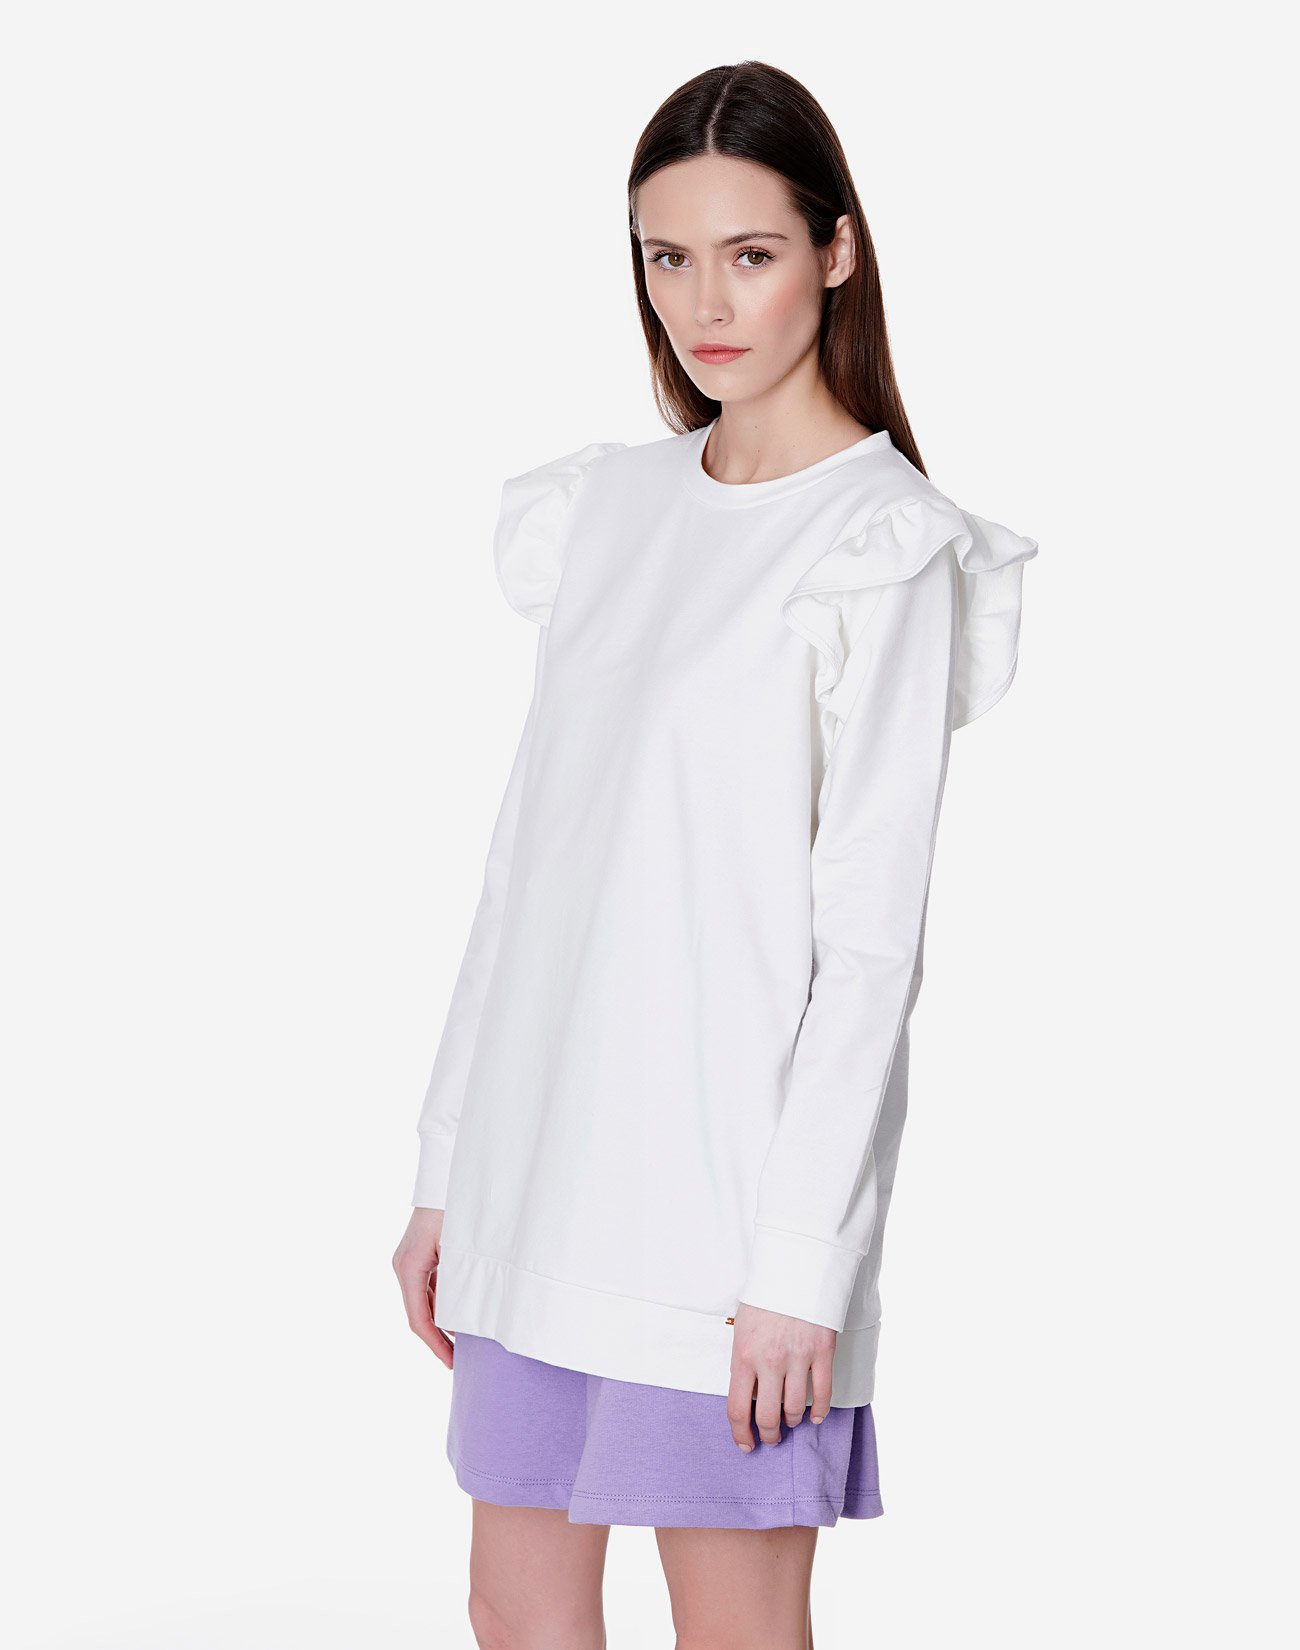 Sweatshirt with ruffles